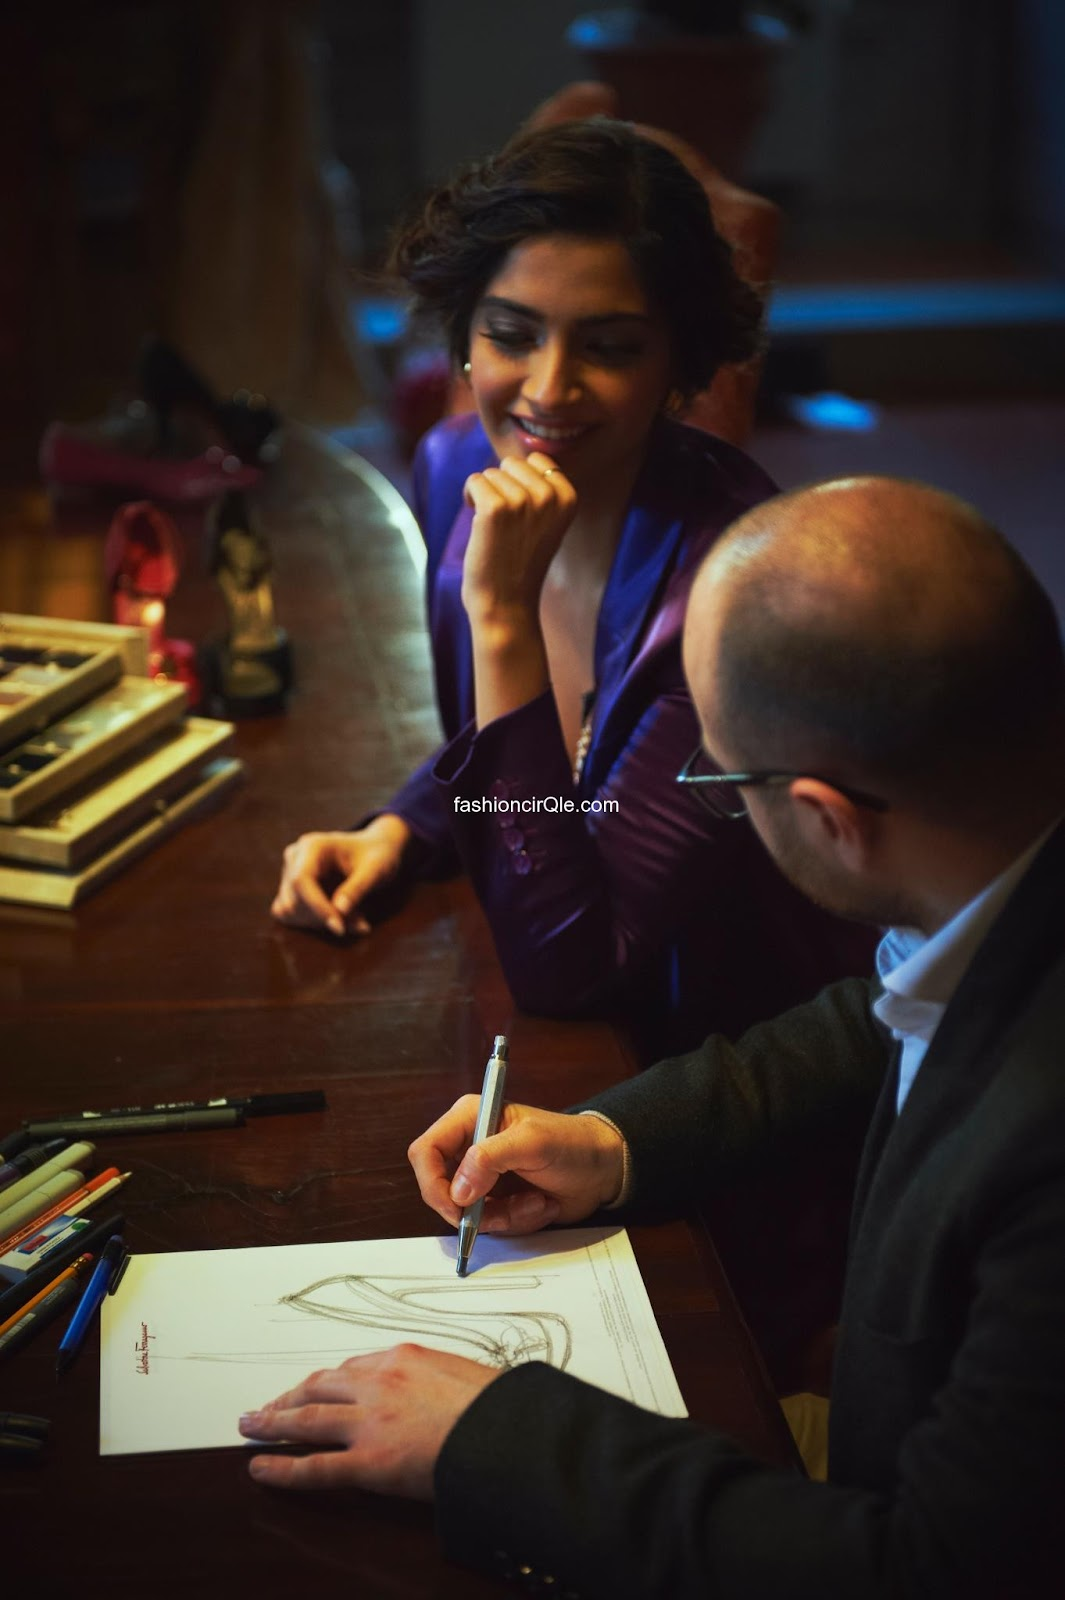  Sonam Kapoor 1 -  Sonam Kapoor Visits Ferragamo Headquarters